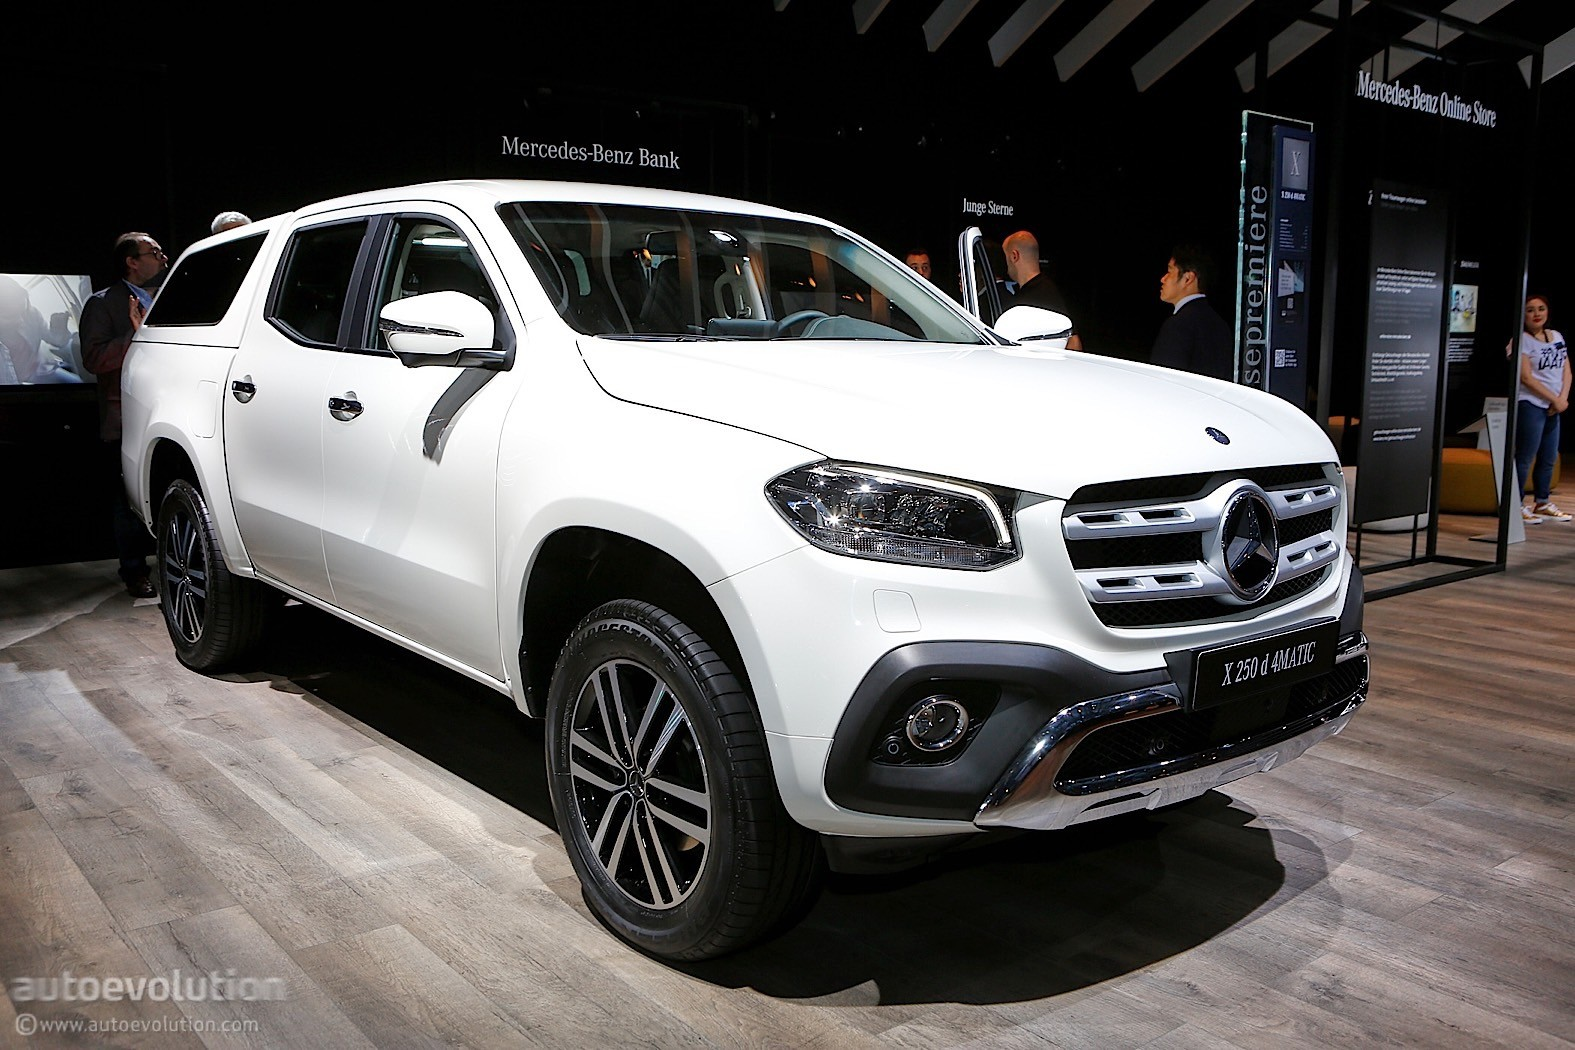 Hybrid Pickup Truck >> 2018 Mercedes-Benz X-Class is Like a Caveman in an Expensive Suit at IAA - autoevolution